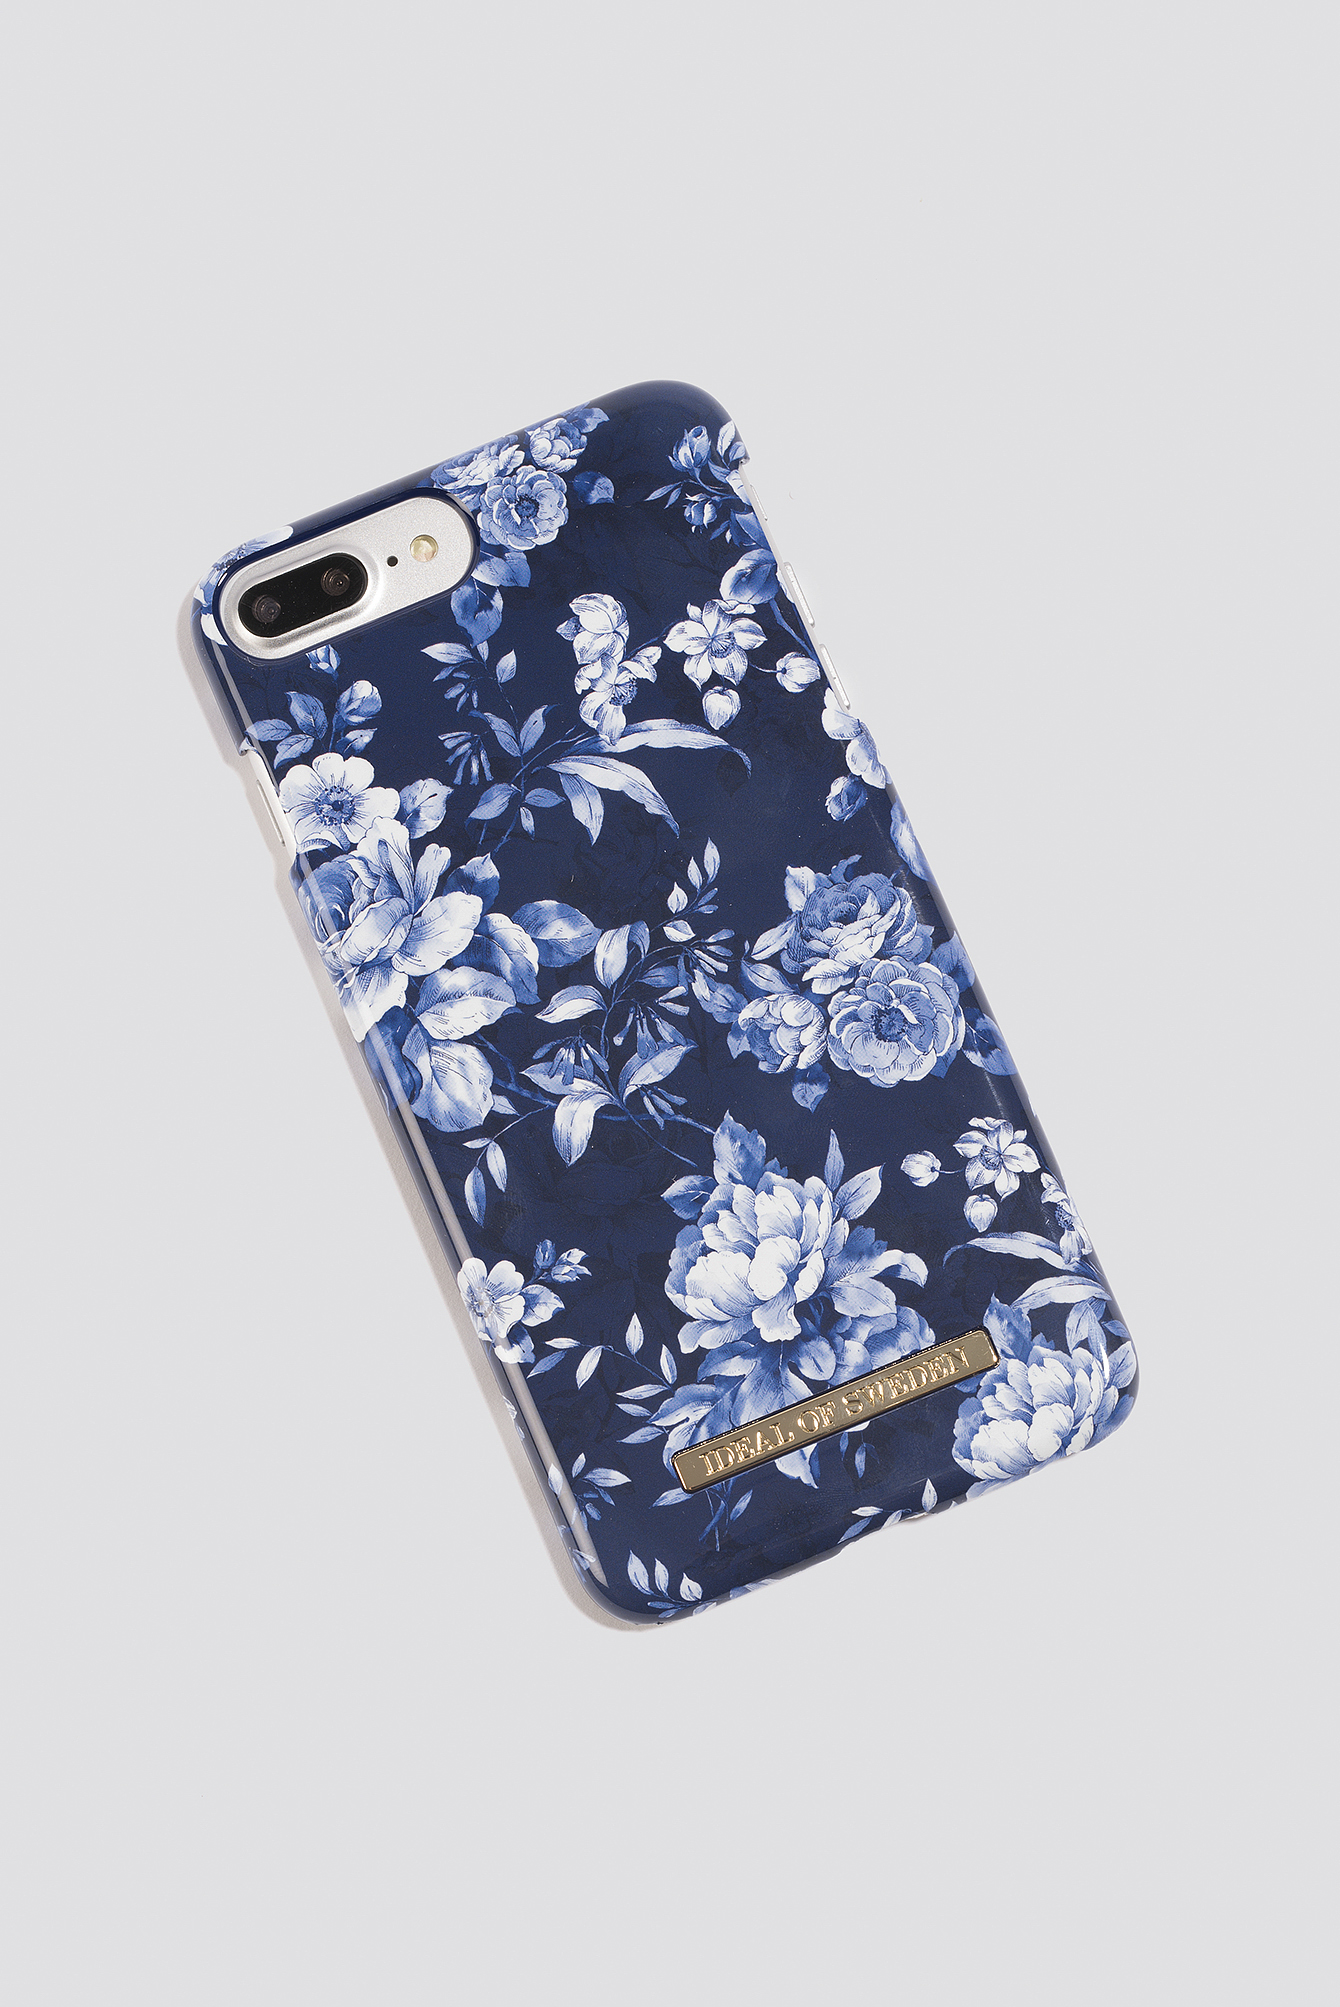 sailor blue bloom iphone 6 7 8 plus case sailor blue bloom na. Black Bedroom Furniture Sets. Home Design Ideas